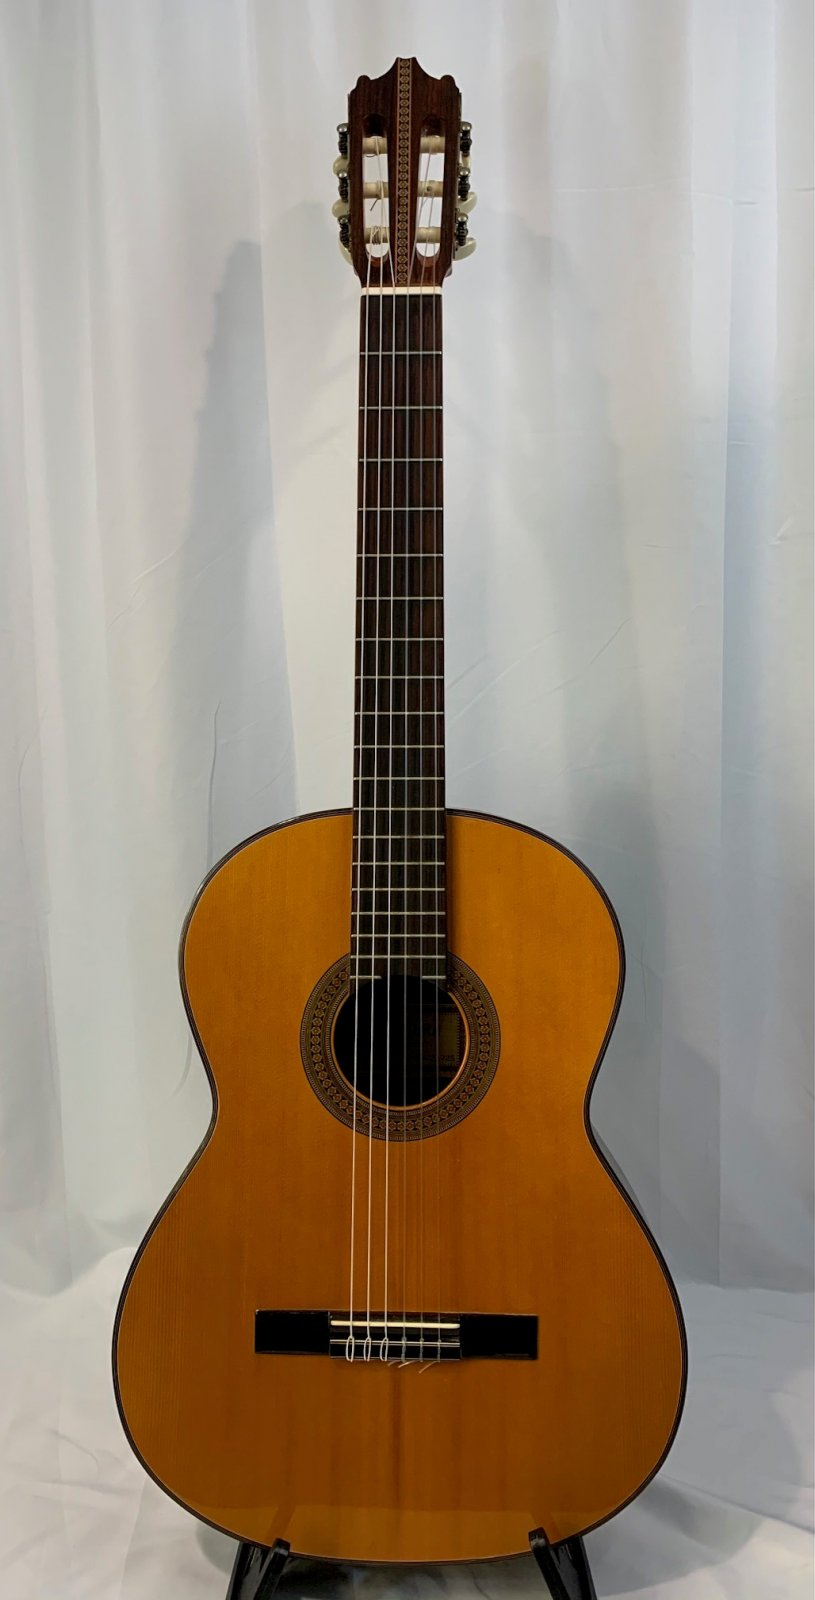 Used Bruno V-1587 Classical Guitar with case